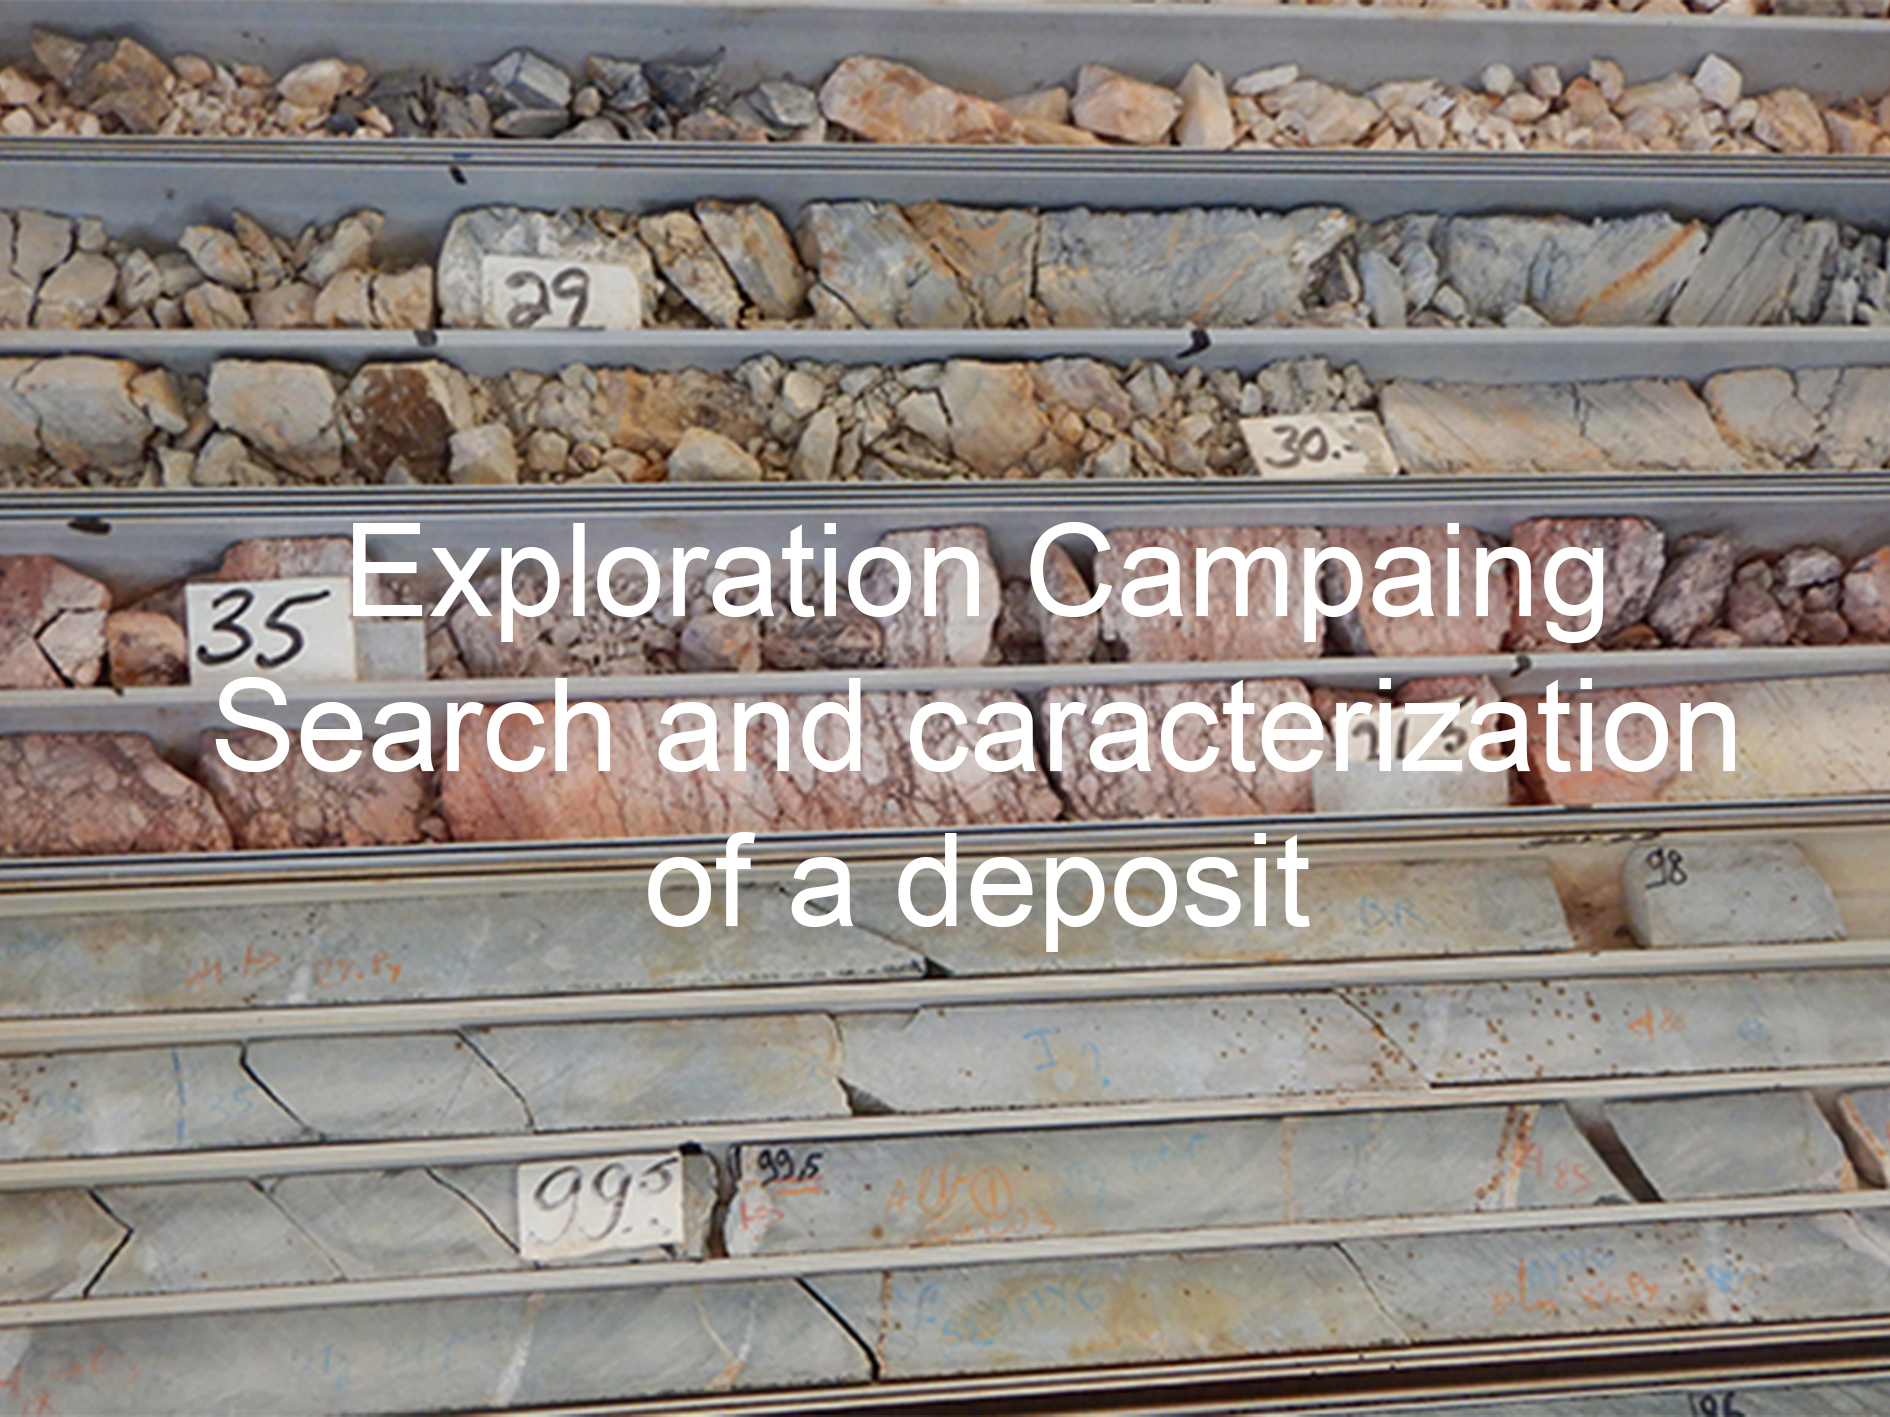 Exploration Campaing Search and caracterization of a deposit, Tellus environment, Energy and Natural Resources